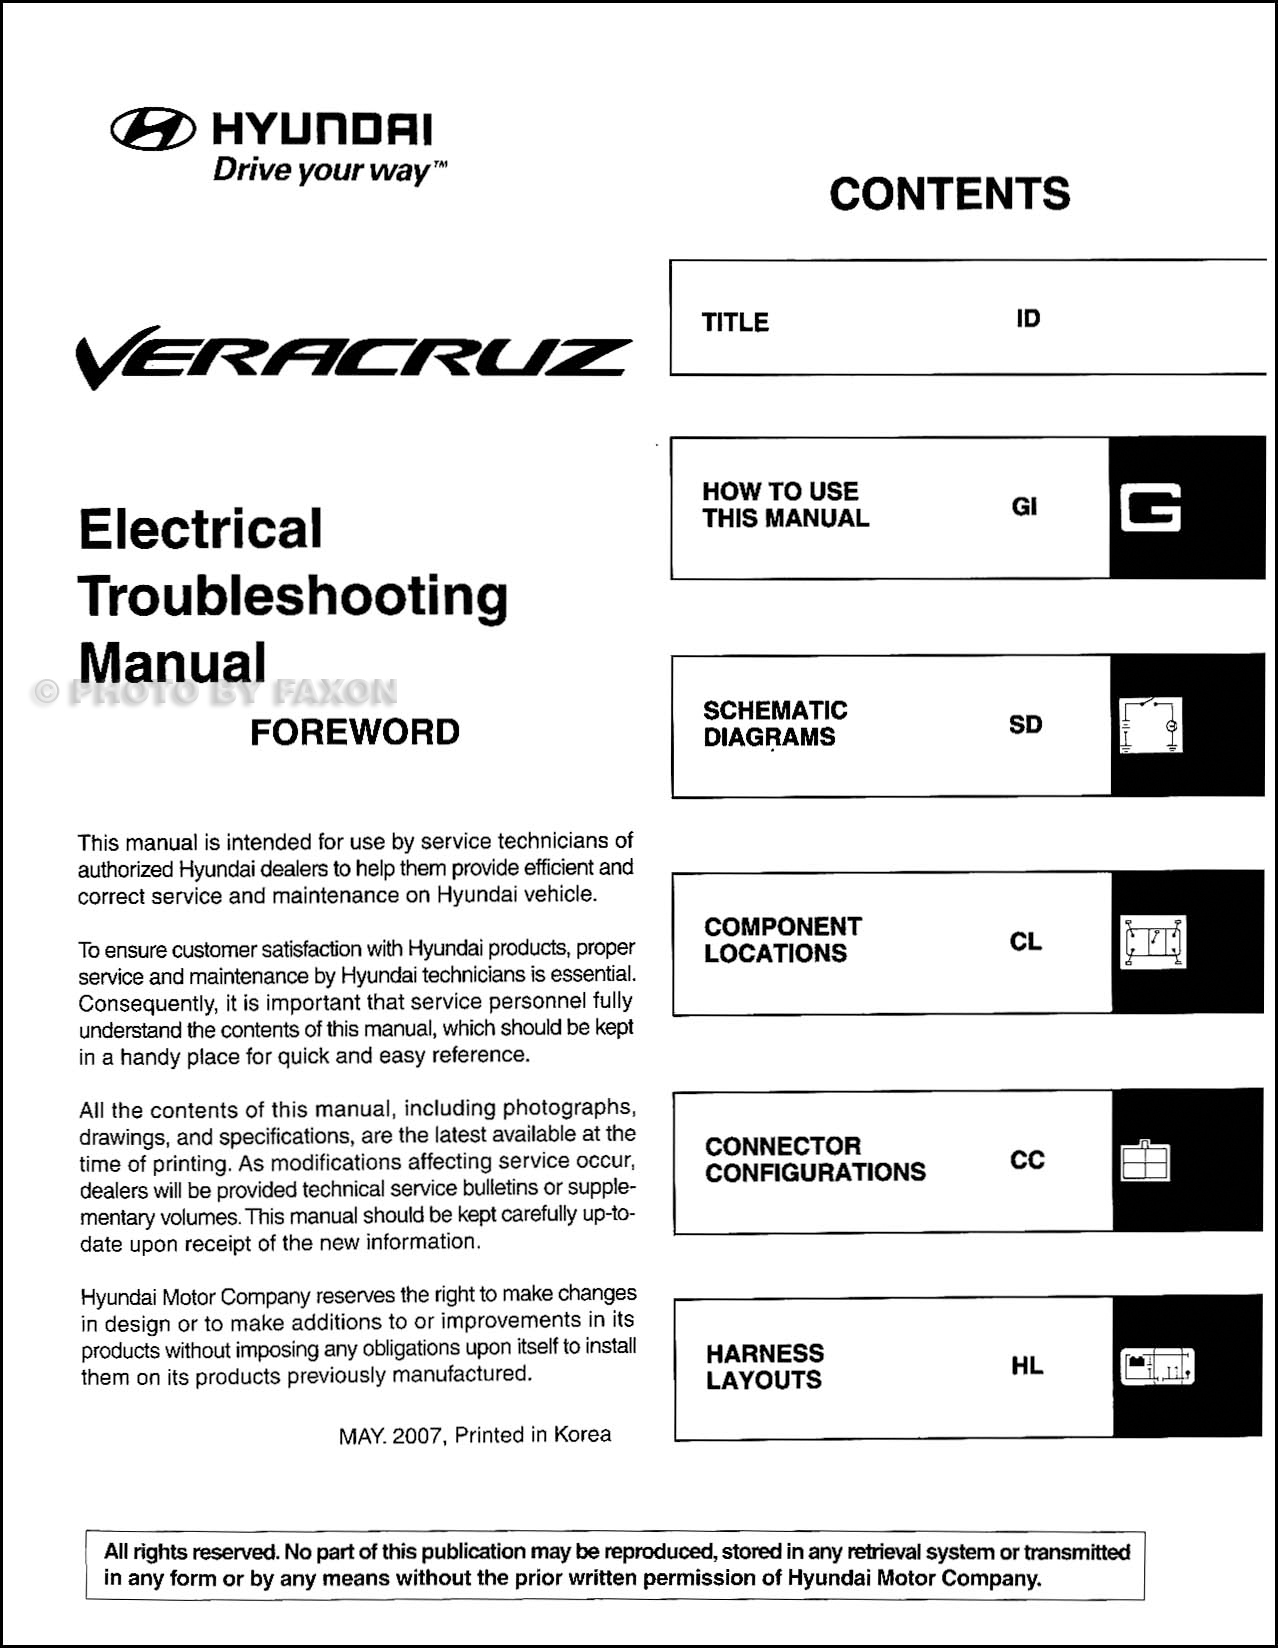 hyundai veracruz wiring diagram manual e books Block Diagram hyundai veracruz wiring diagram